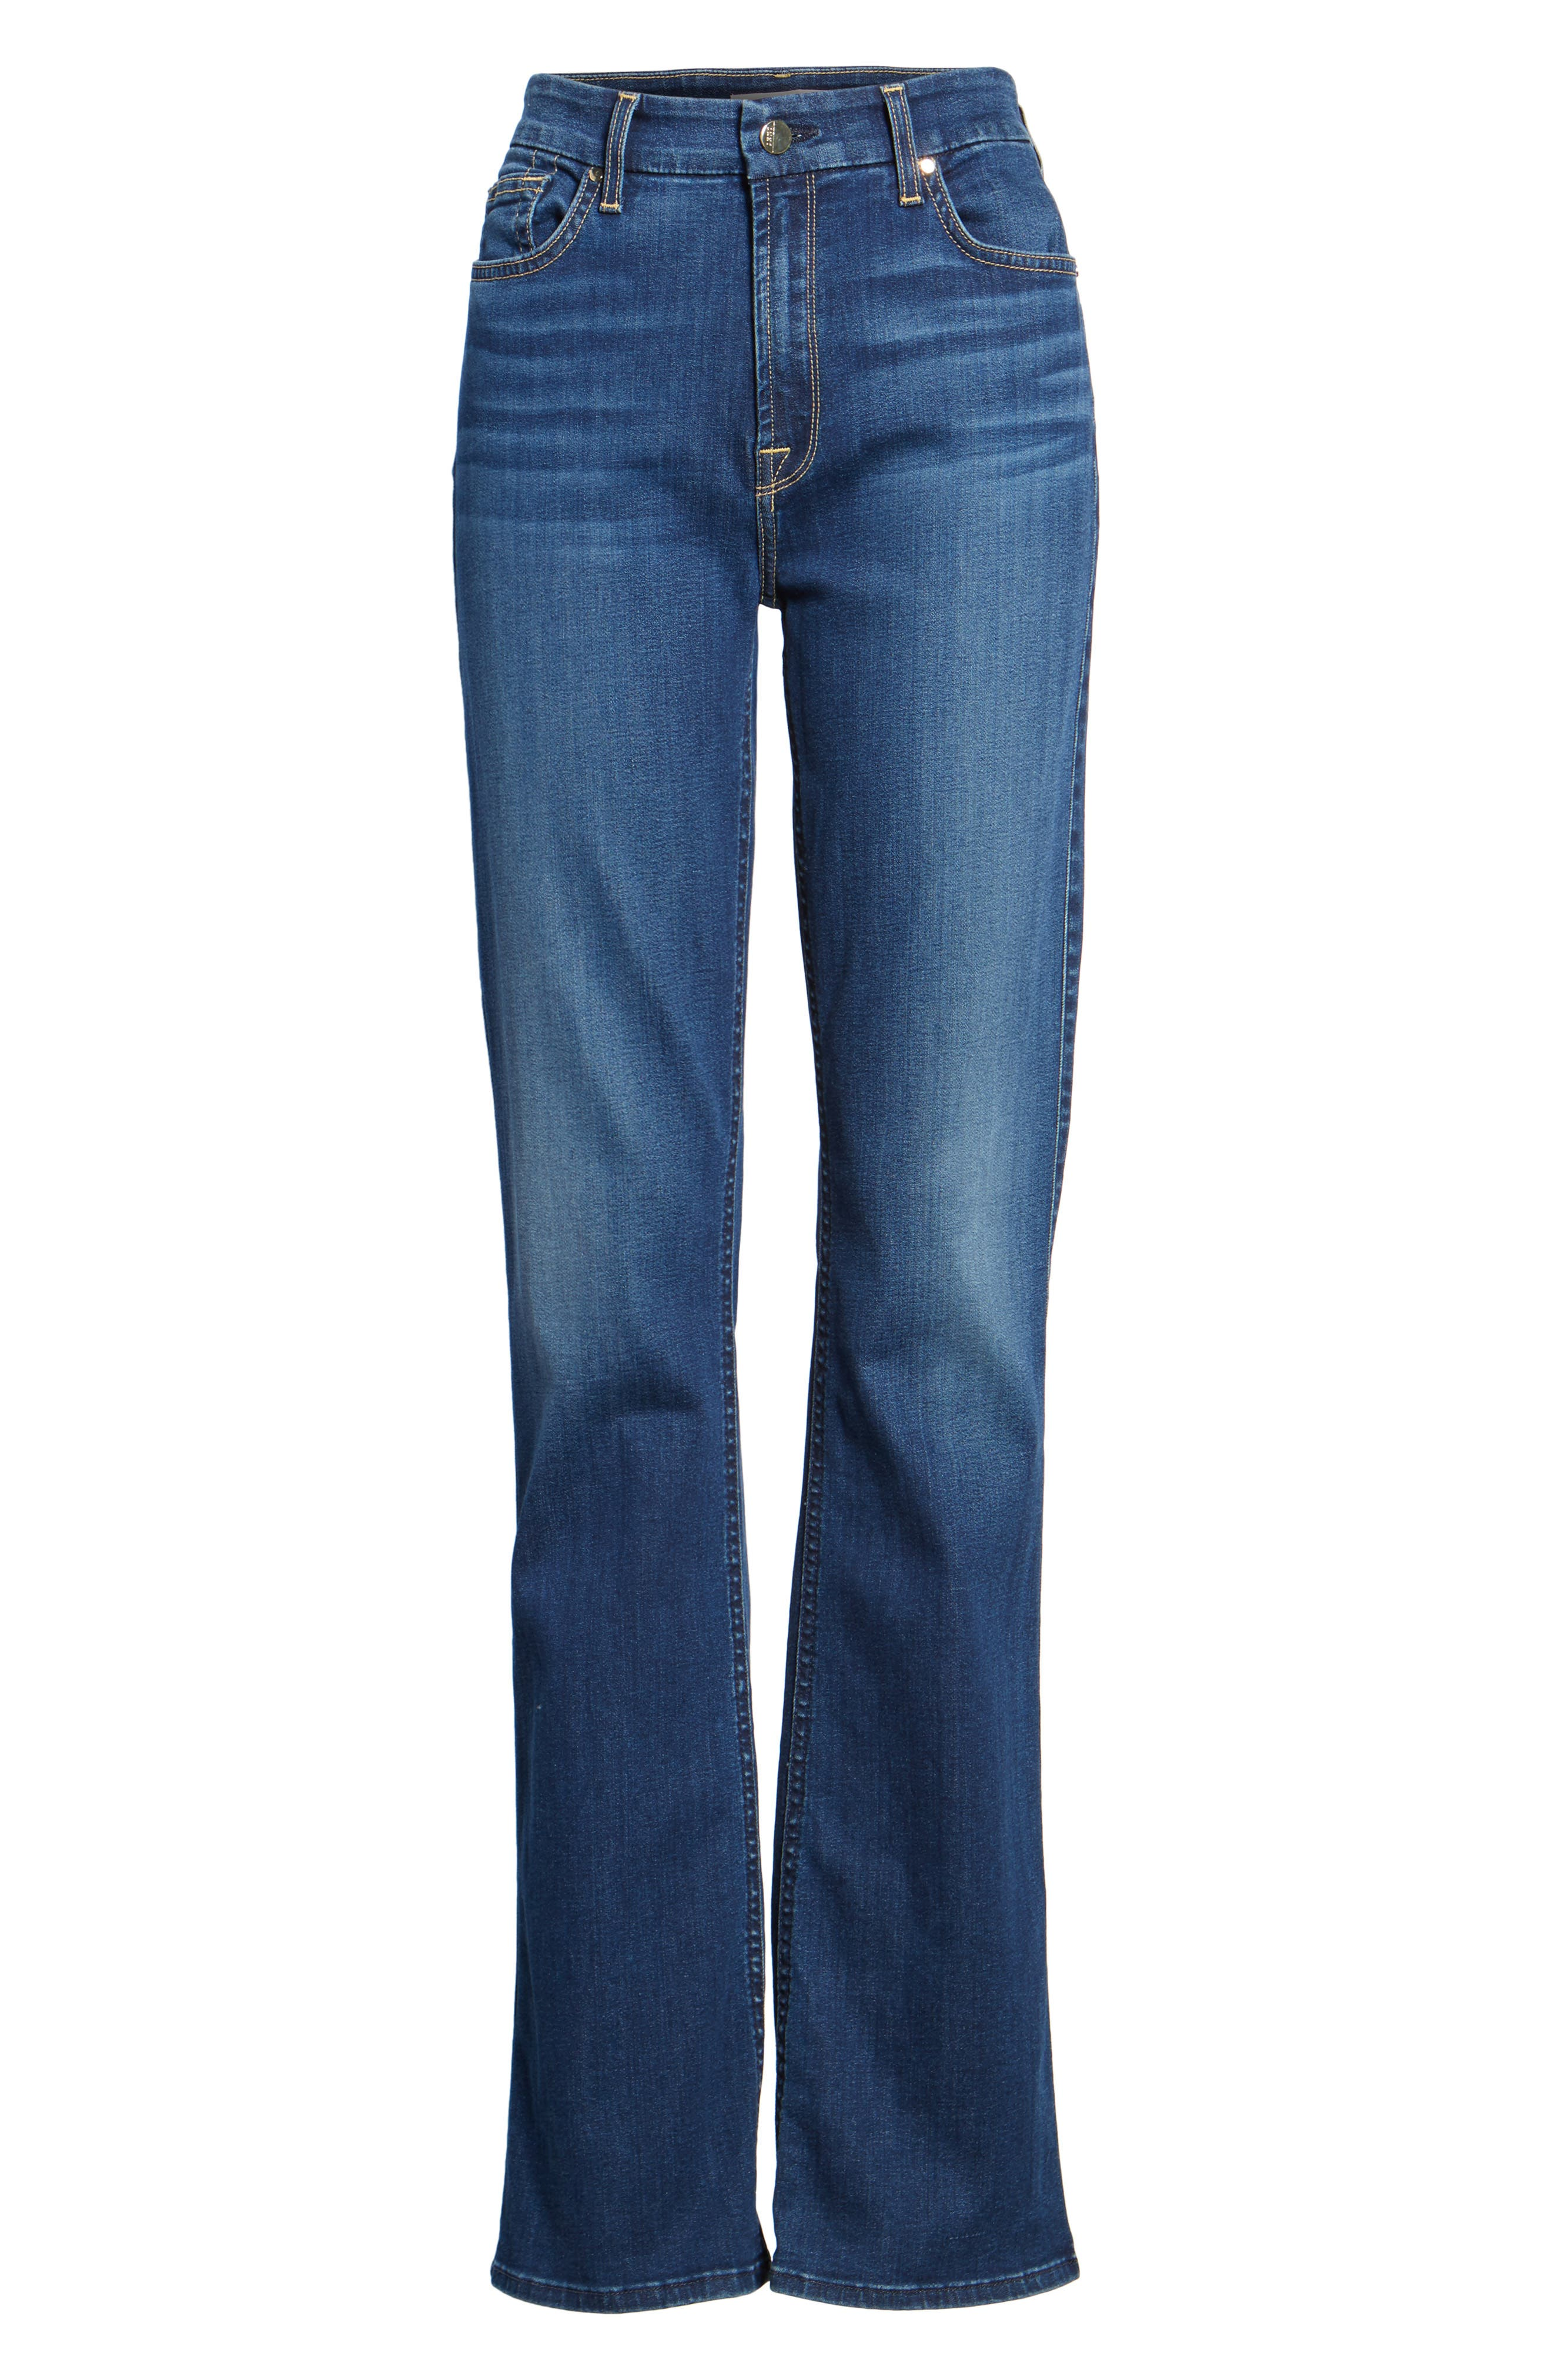 Slim Bootcut Jeans,                             Alternate thumbnail 6, color,                             401